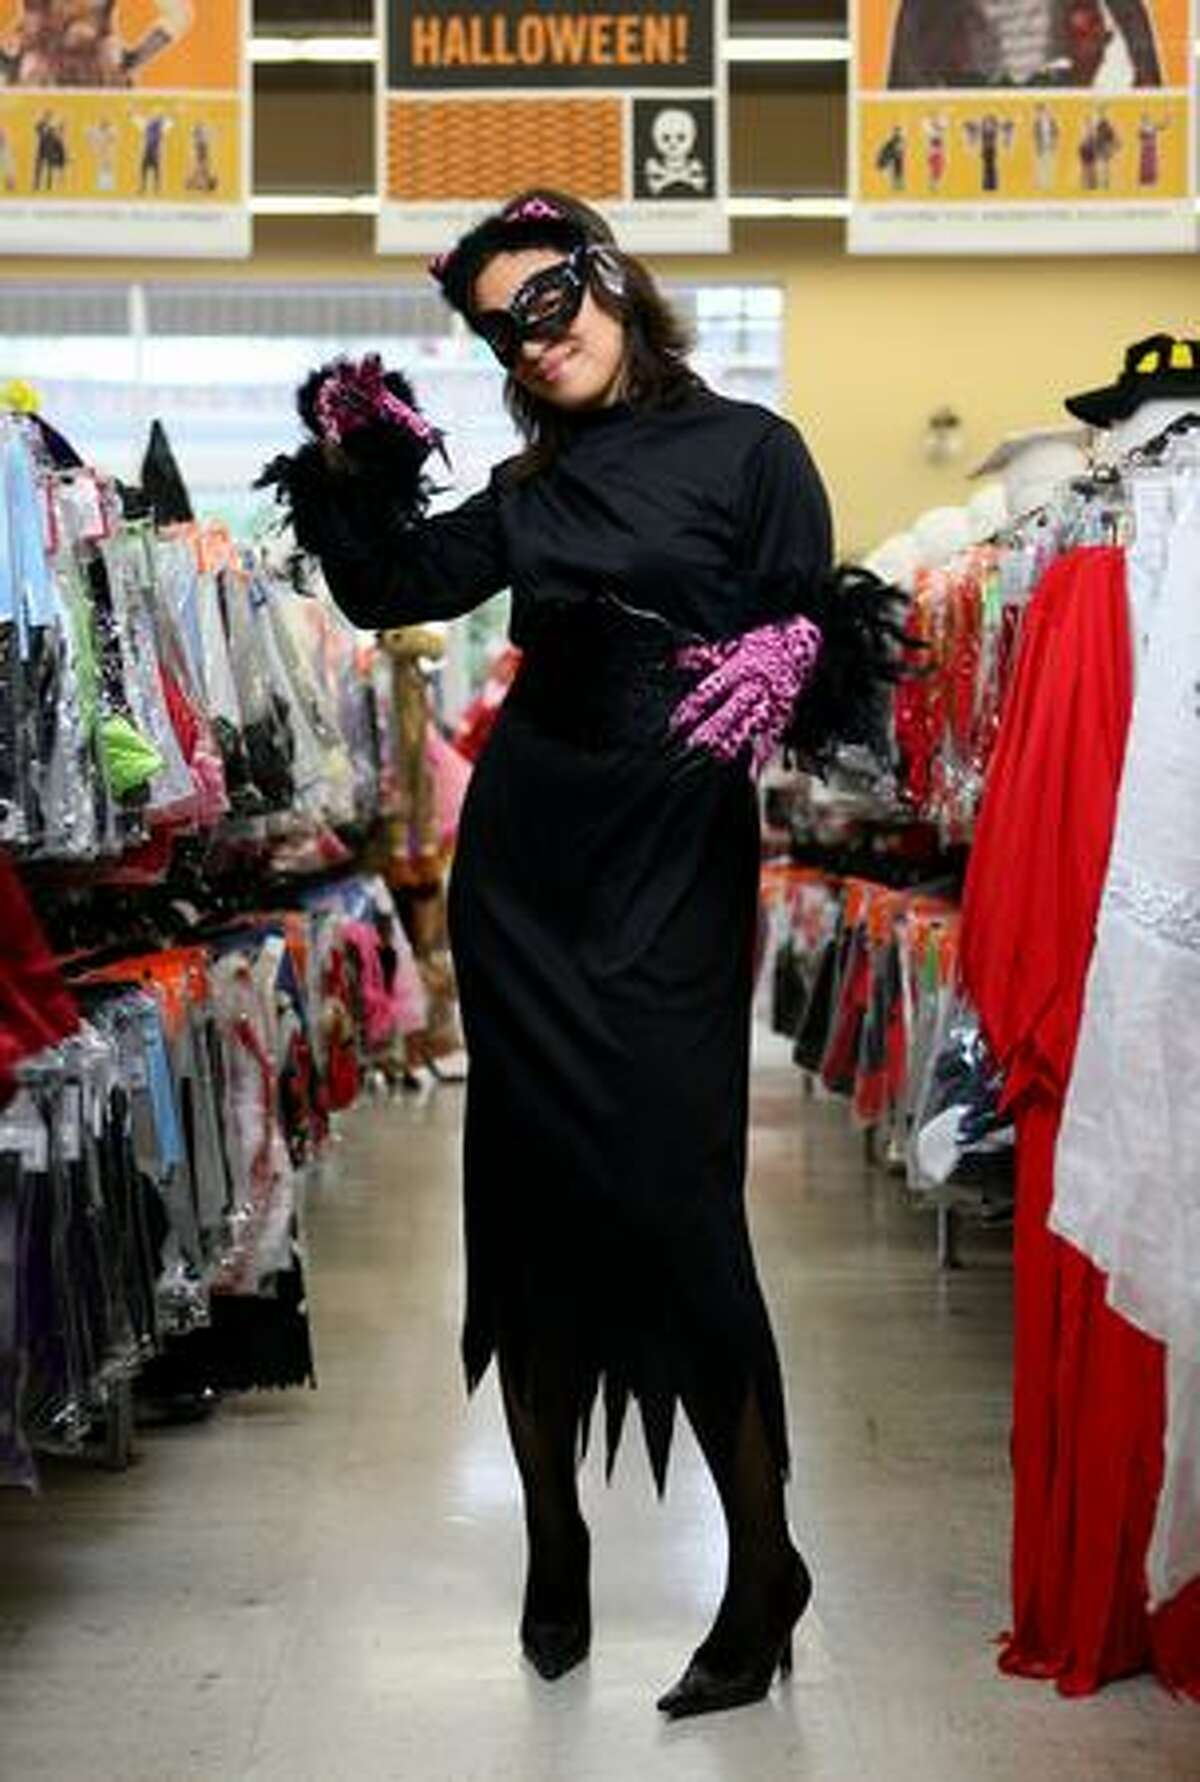 """""""Catwoman"""" -- Gloves, ears (new) $5.99; mask, $1.99; fishnet stockings, $2.99; dress, $4.99. Photographed at Value Village in Seattle."""